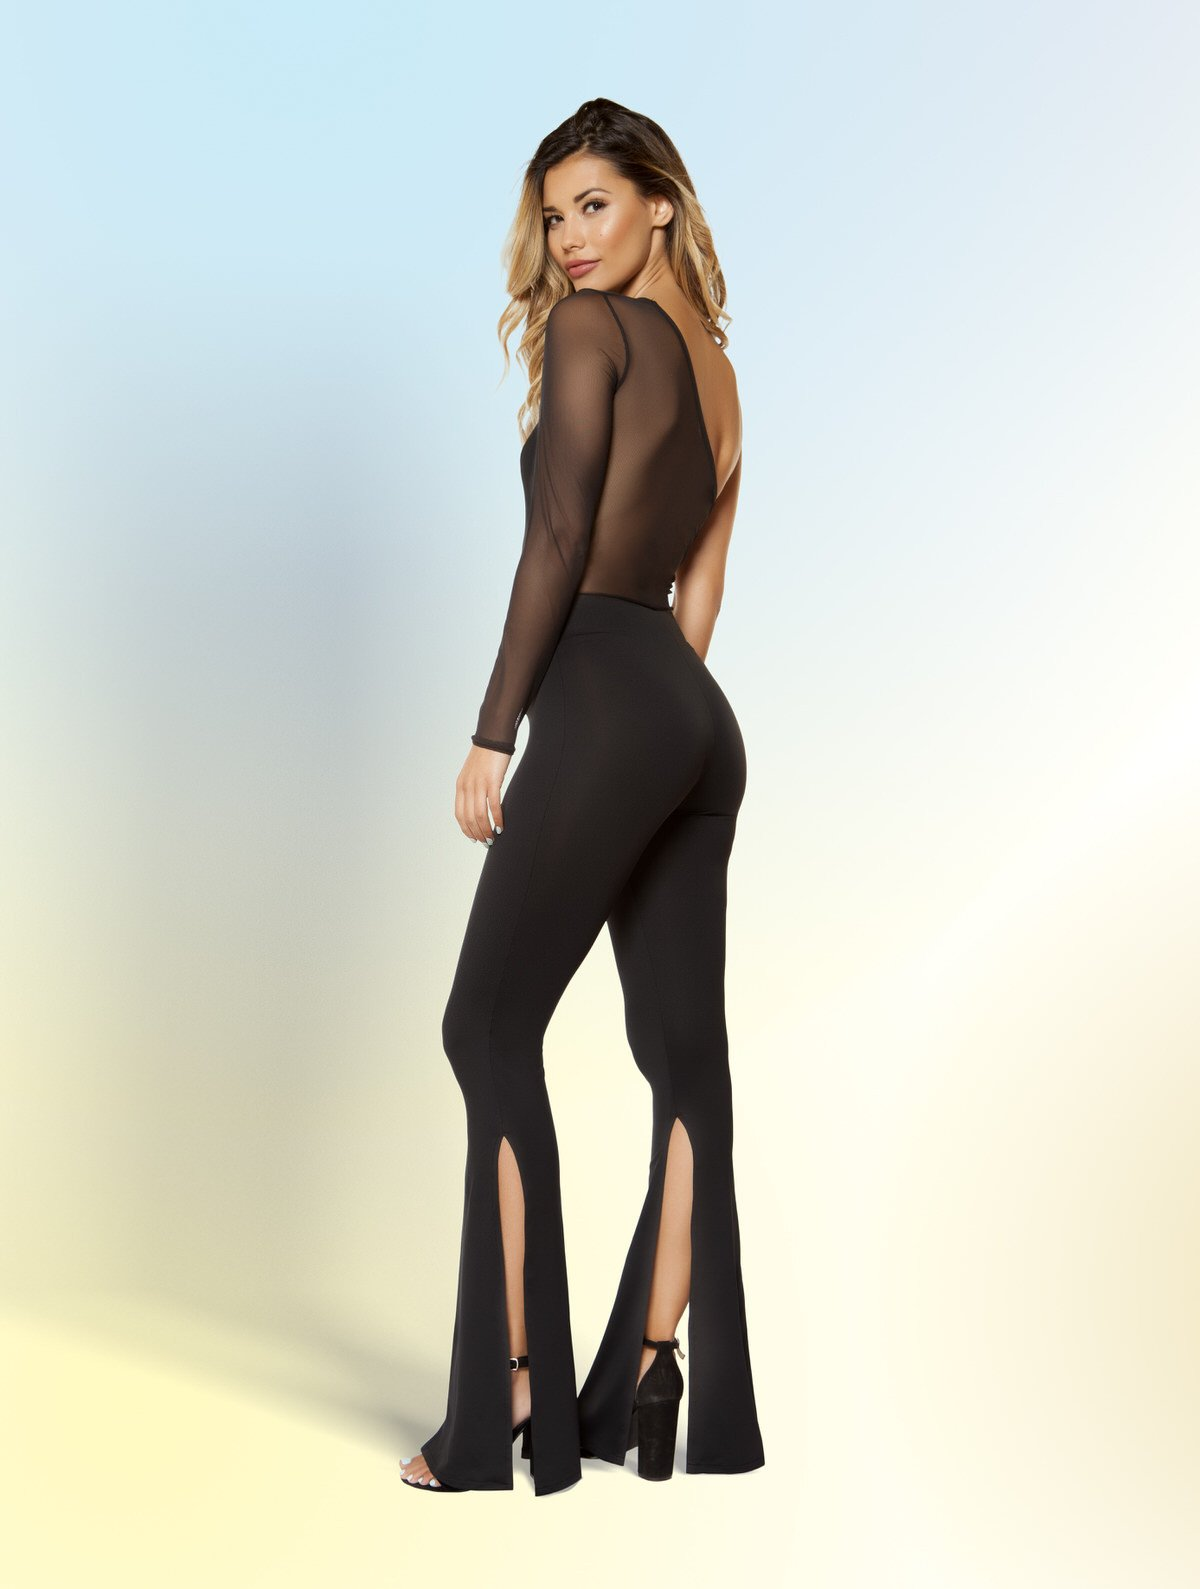 3399 - Single Sleeved Jumpsuit with Slit Bottoms - pink-ritual